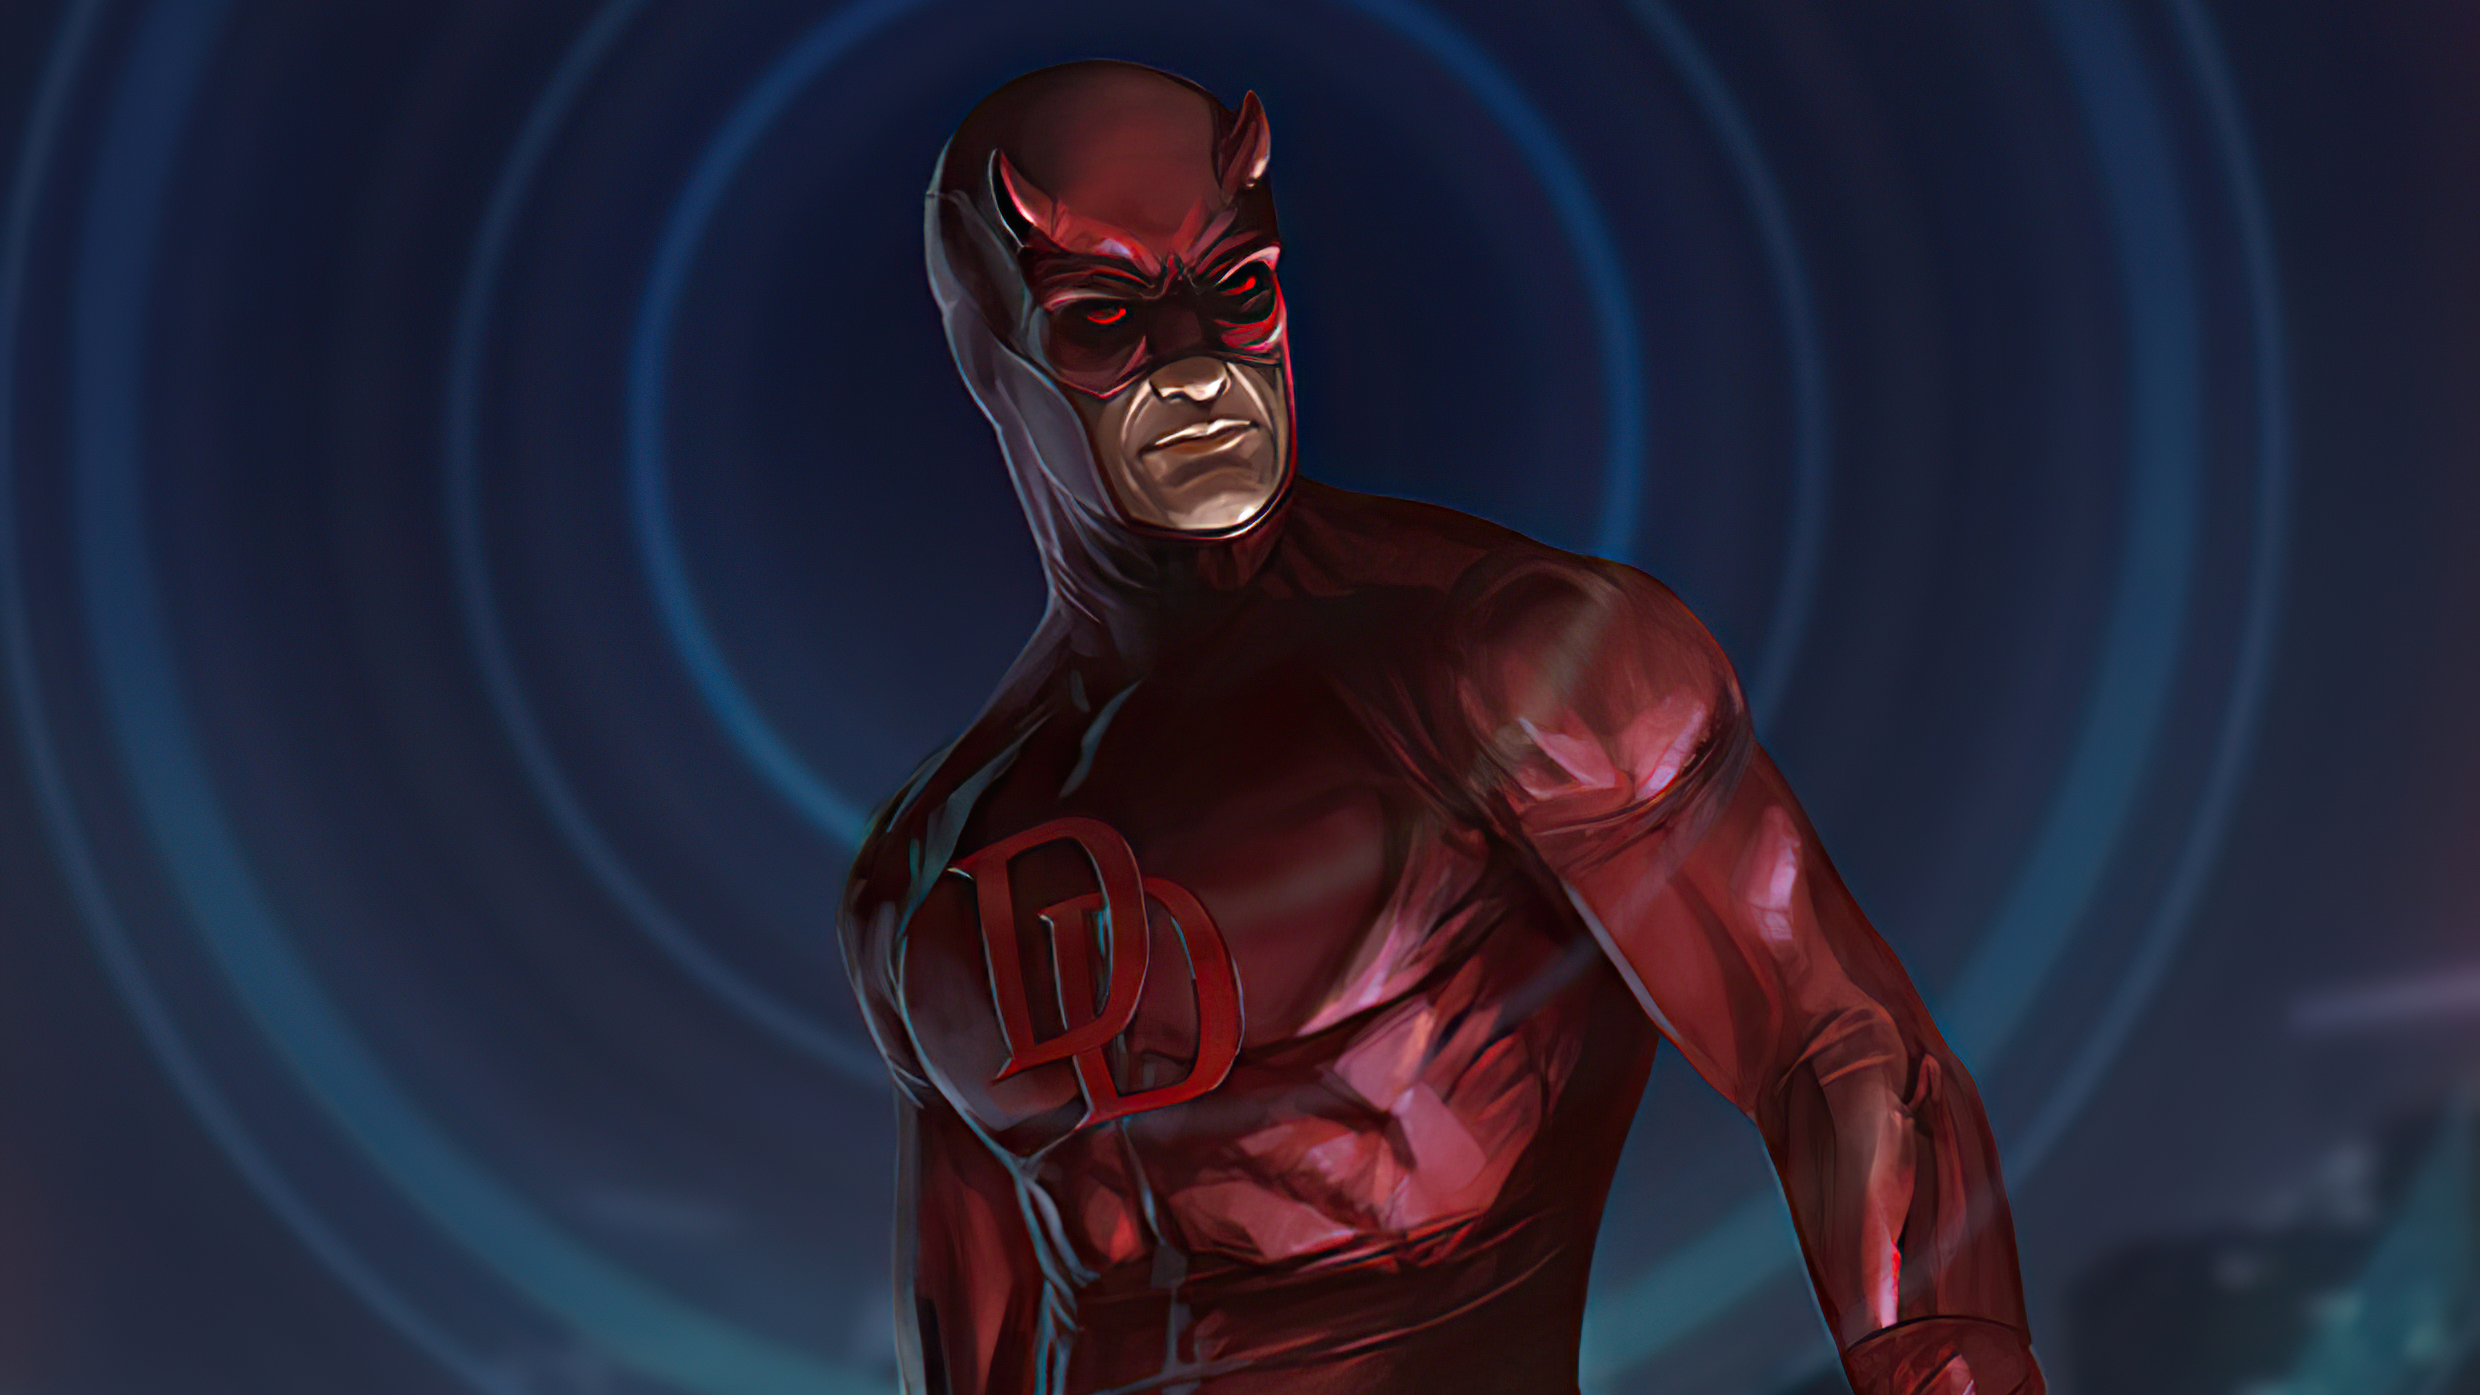 daredevil is rounded